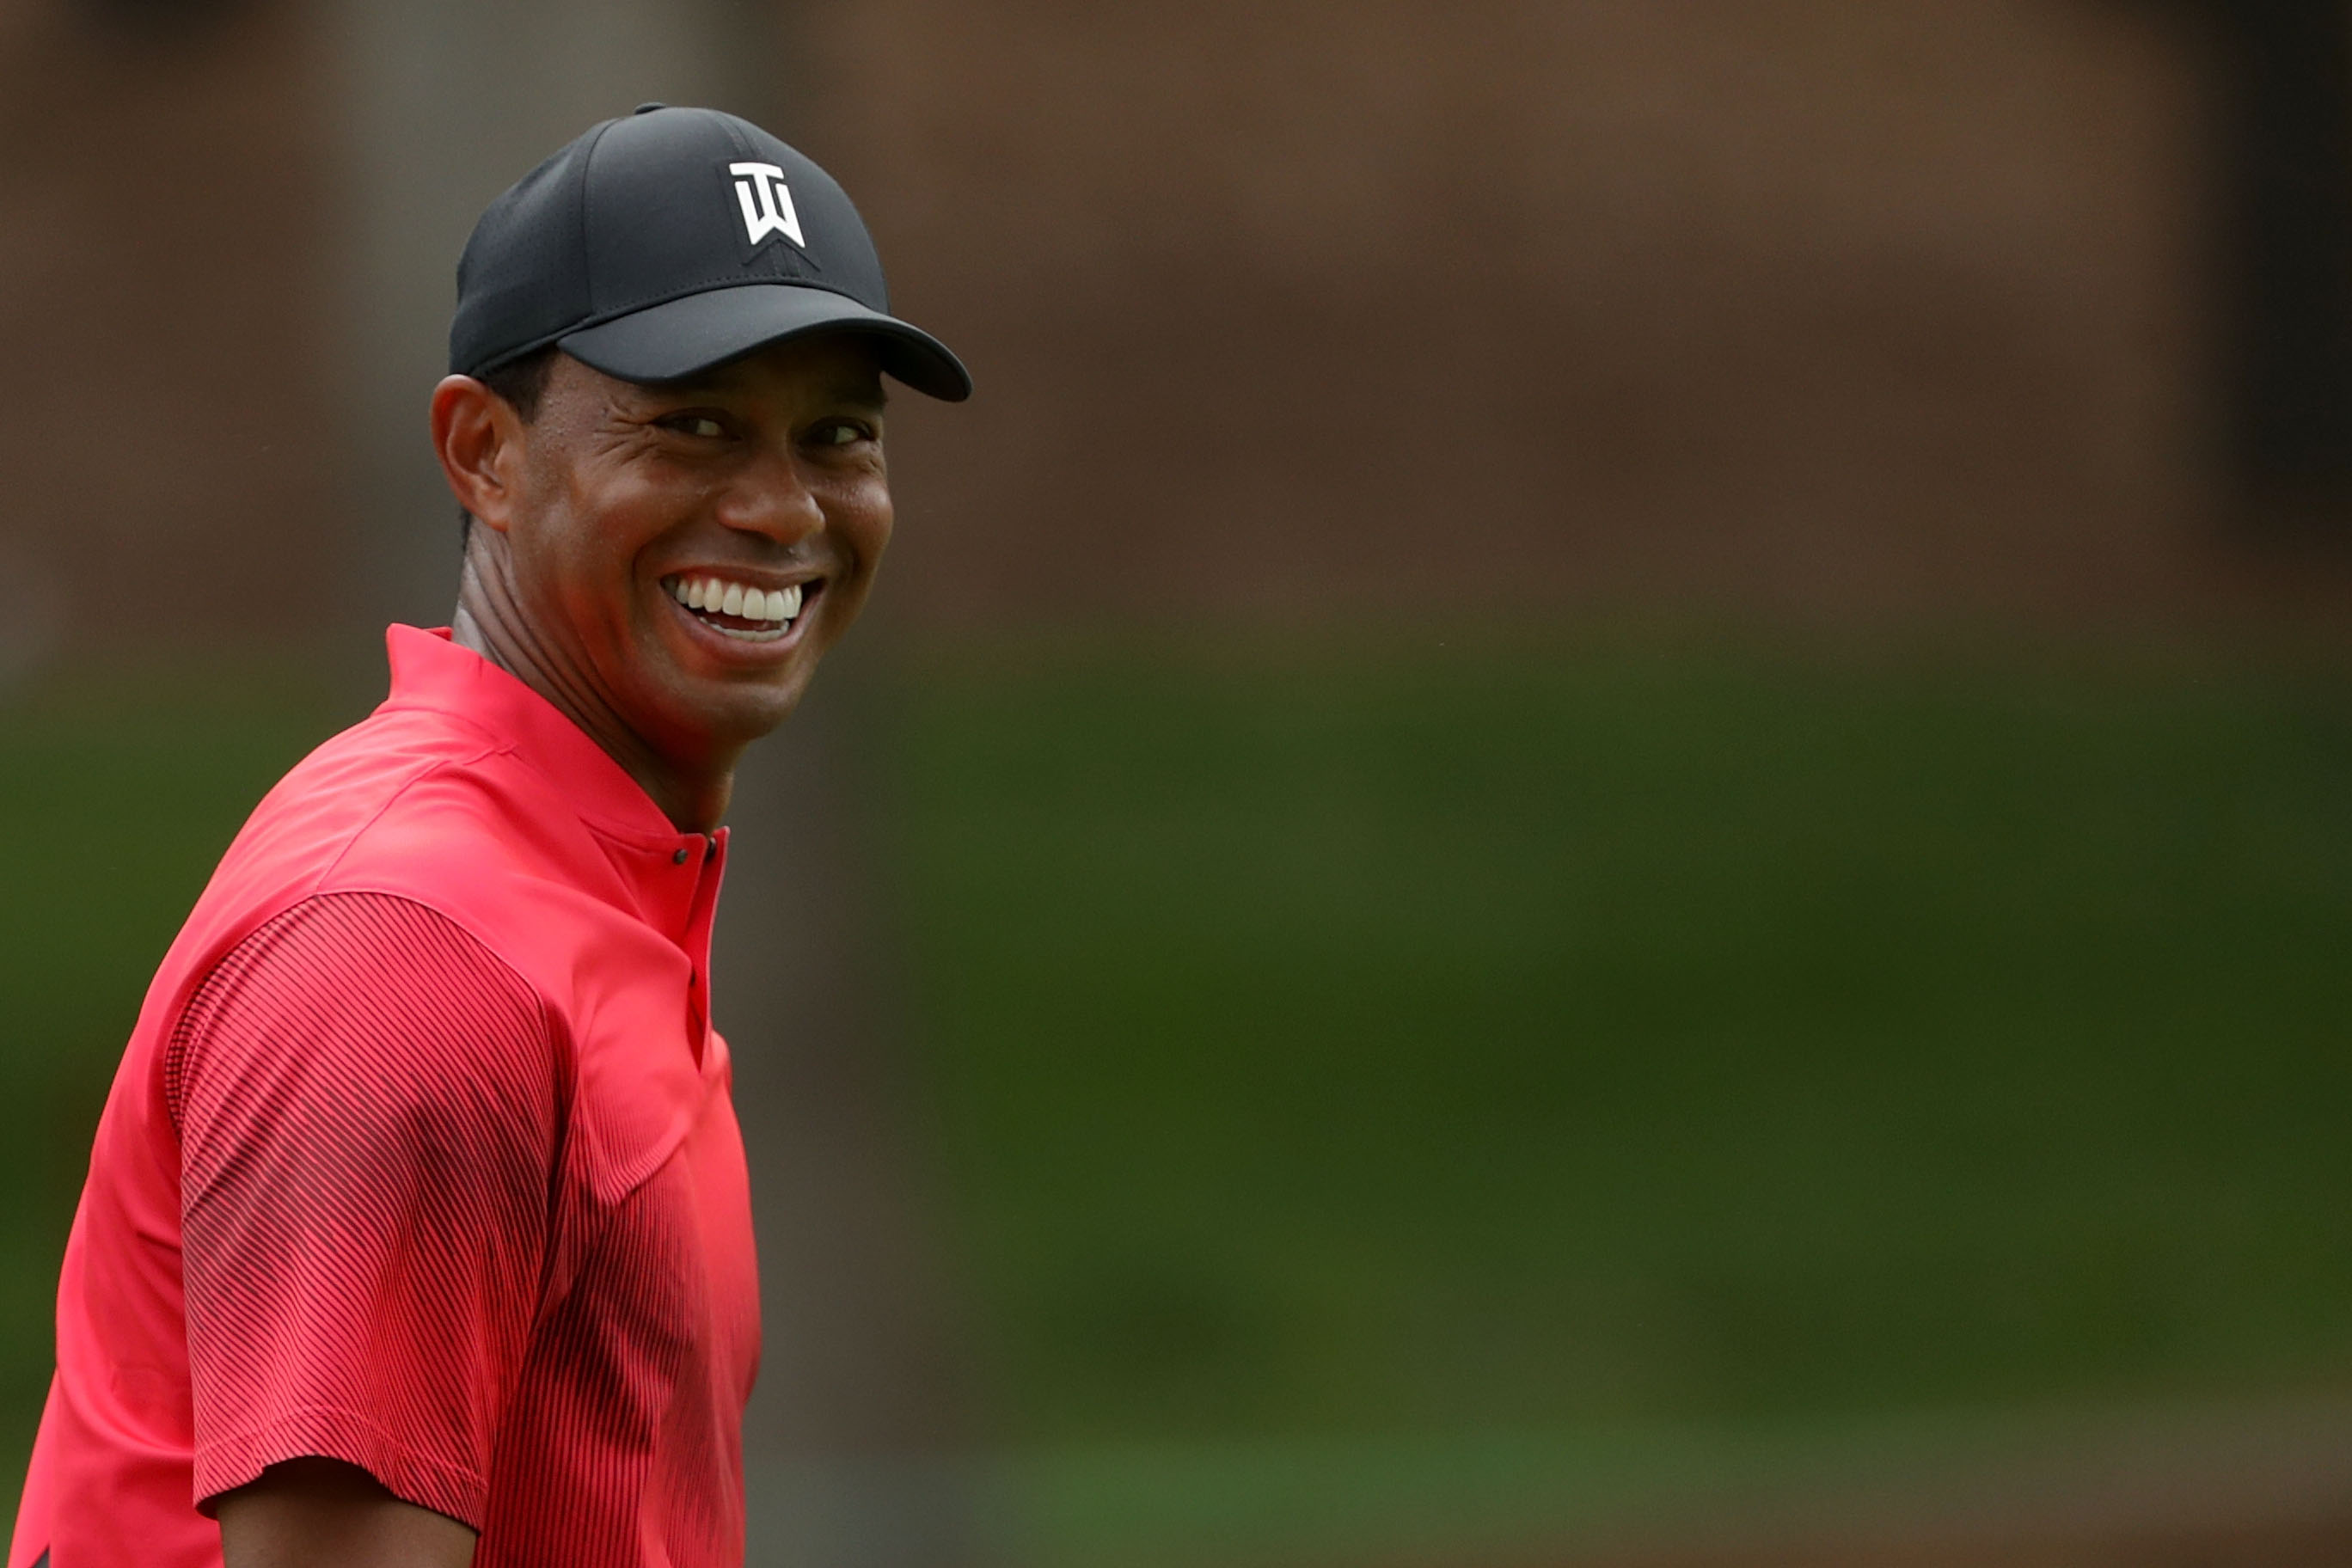 Tiger Woods to play in The Open at Carnoustie